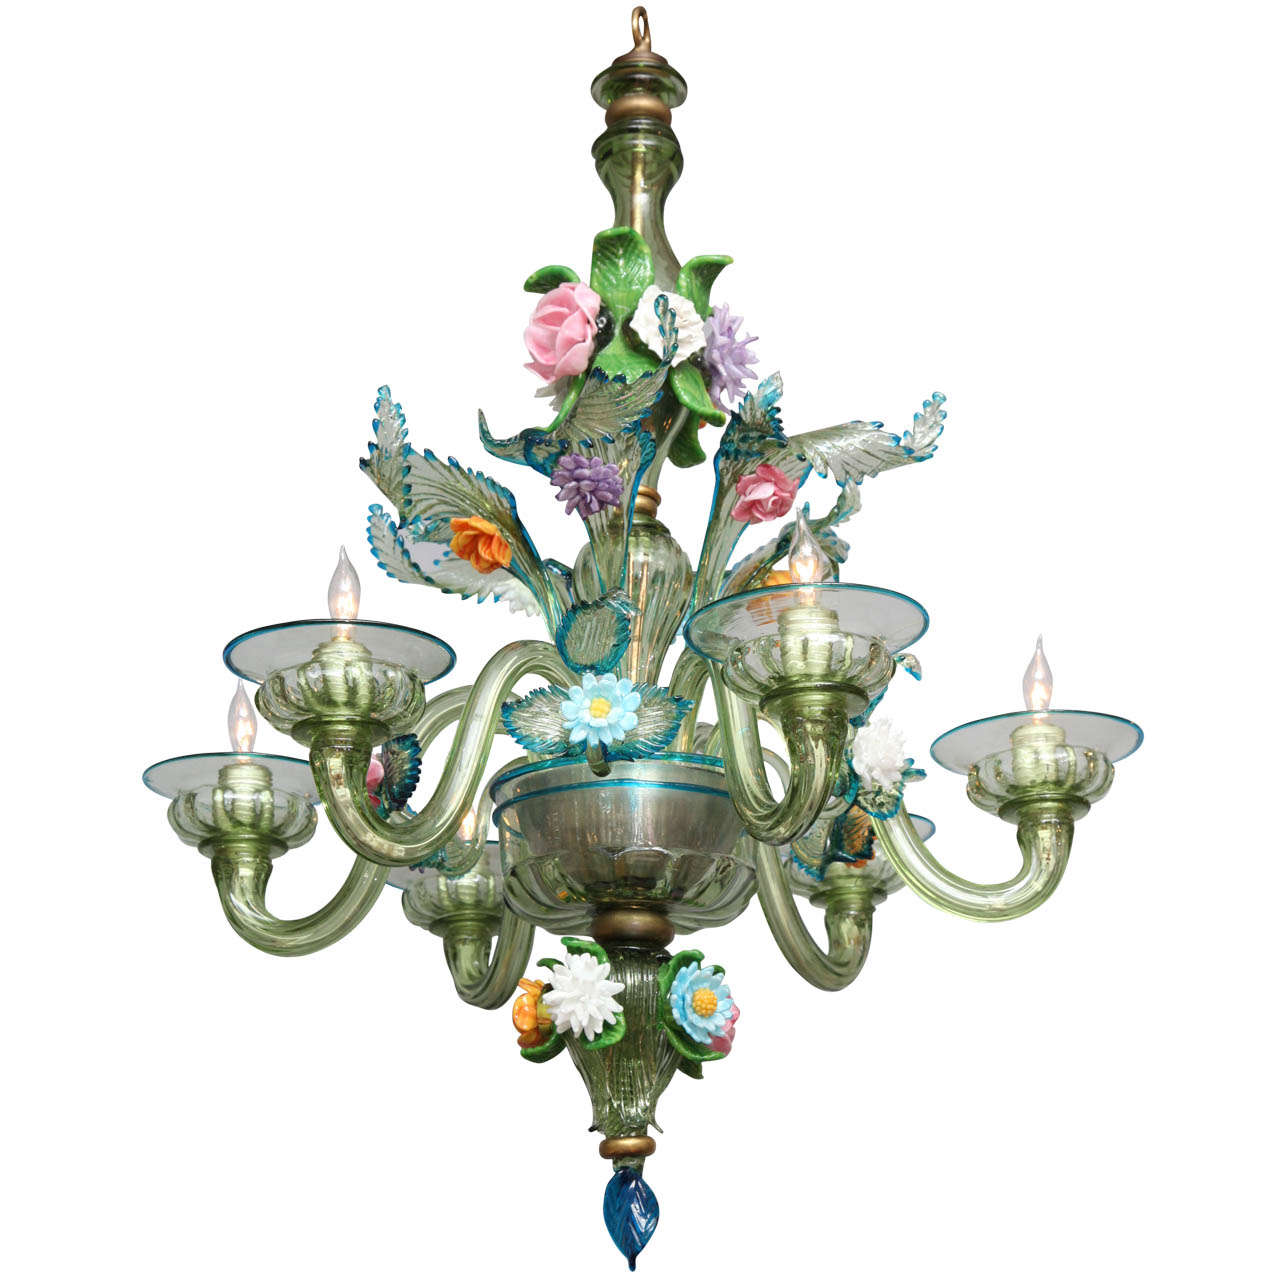 Murano Glass Chandelier Pictures: A Six Light Italian Murano Glass Chandelier At 1stdibs